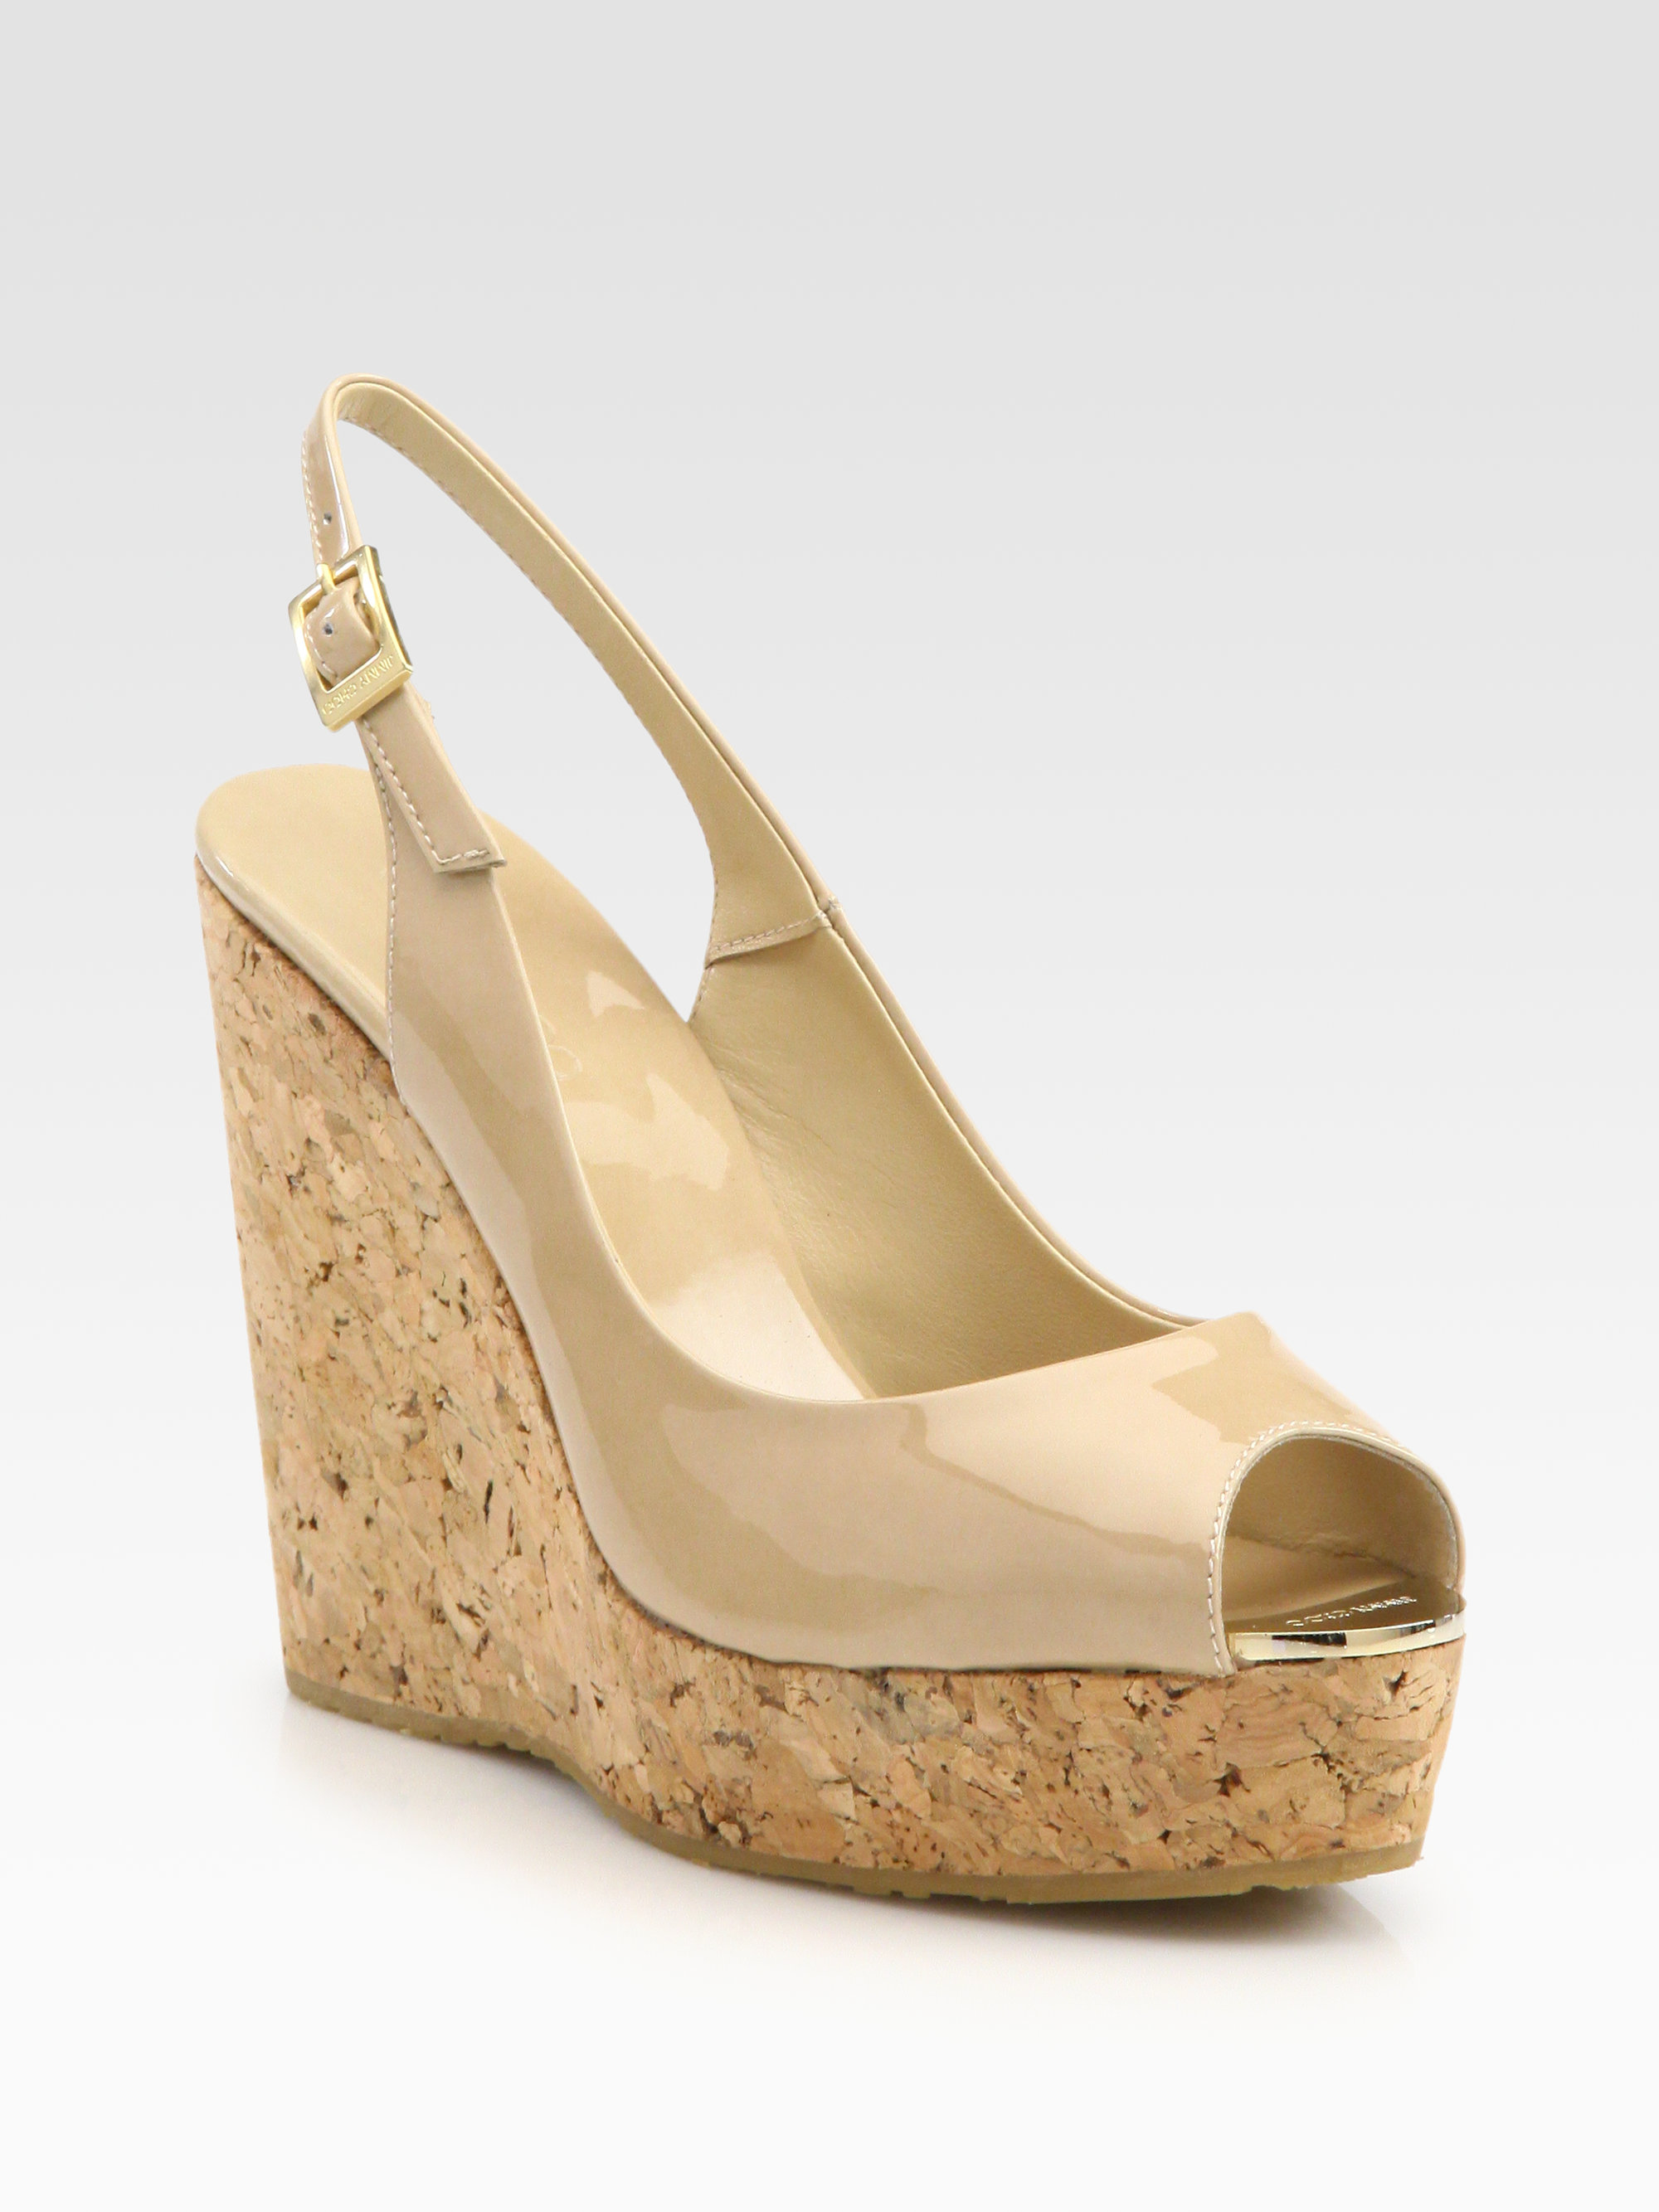 ad1529a8f671 Lyst - Jimmy Choo Prova Patent Leather Cork Wedge Sandals in Natural